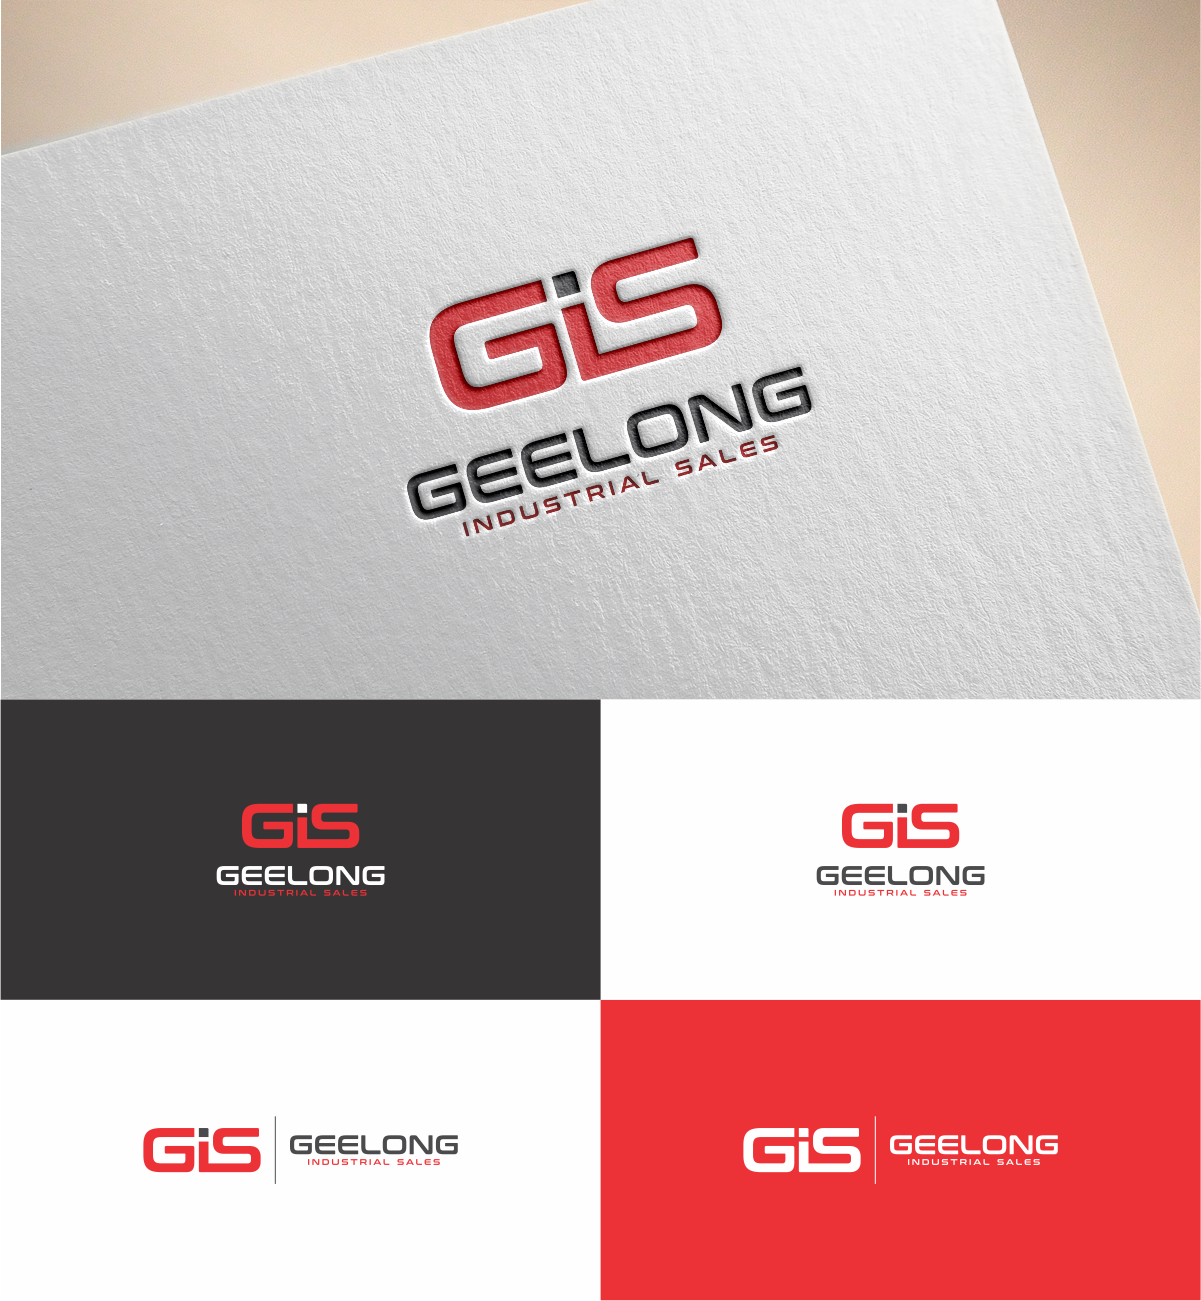 Bold masculine industrial logo design for gis by mkr design bold masculine industrial logo design for geelong industrial sales in australia design 16604607 reheart Choice Image